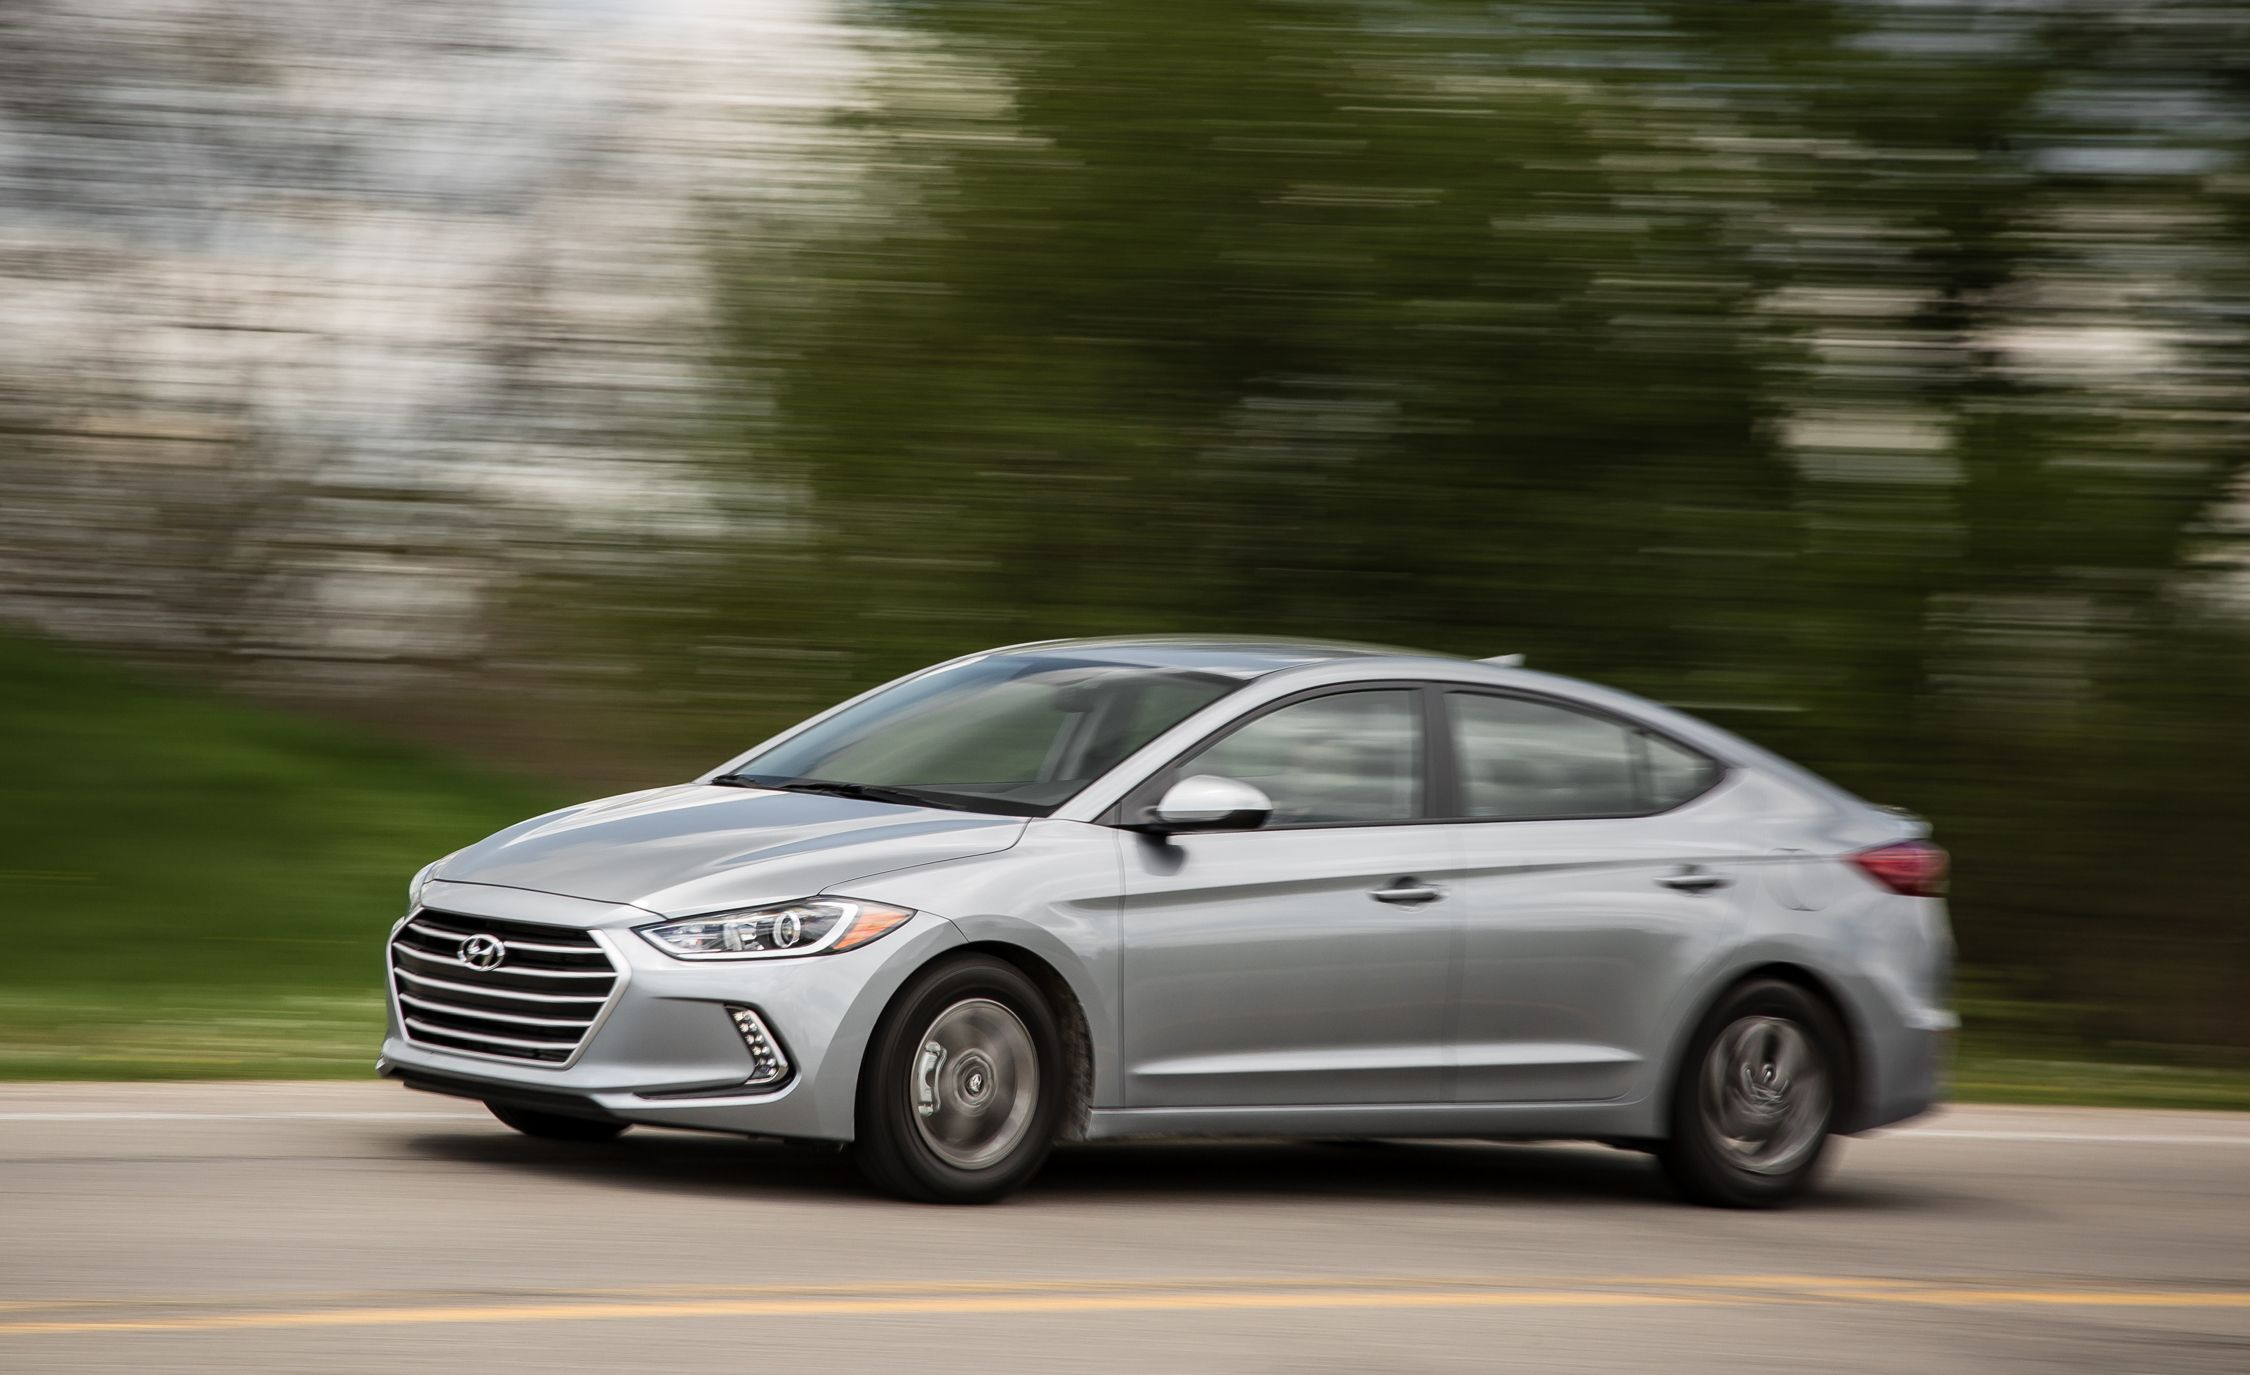 Hyundai Elantra: Good driving practices